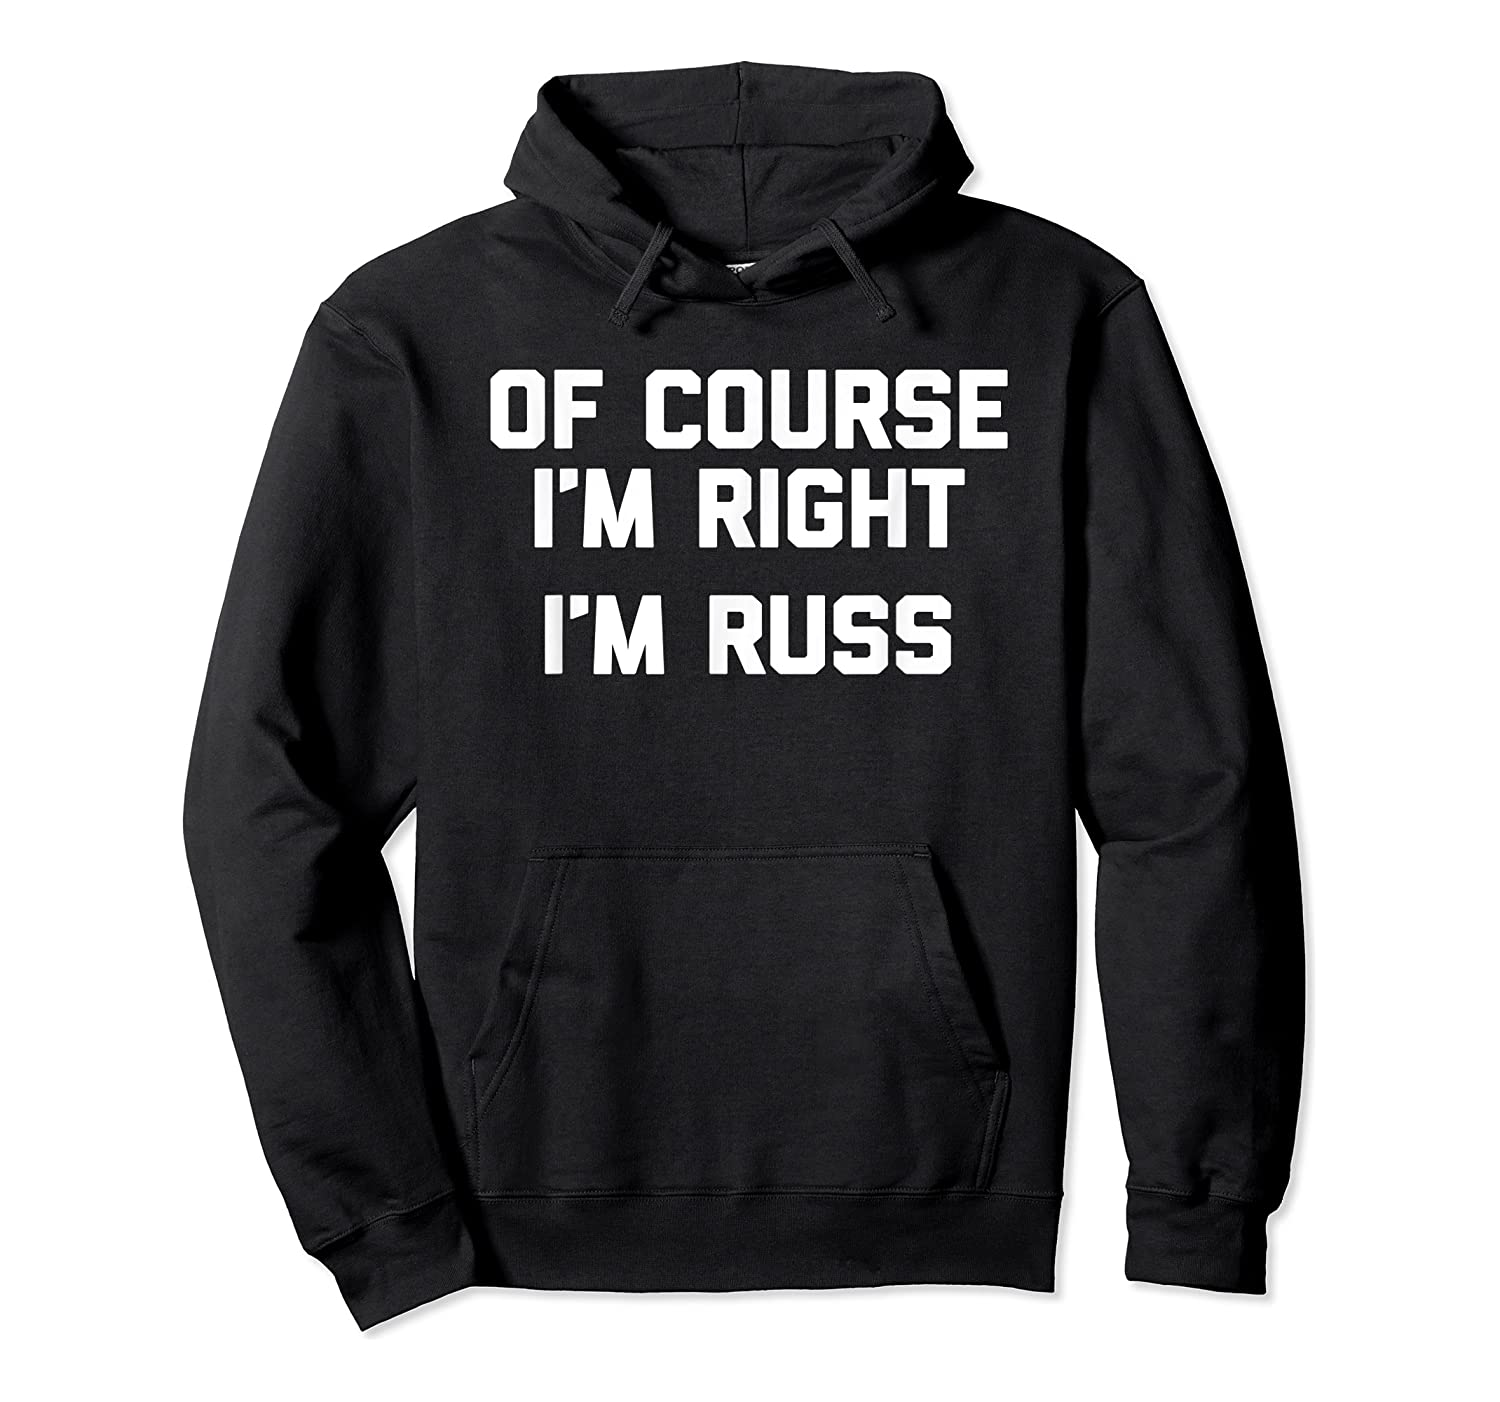 Of Course I'm Right, I'm Russ Funny Saying Sarcastic Shirts Unisex Pullover Hoodie